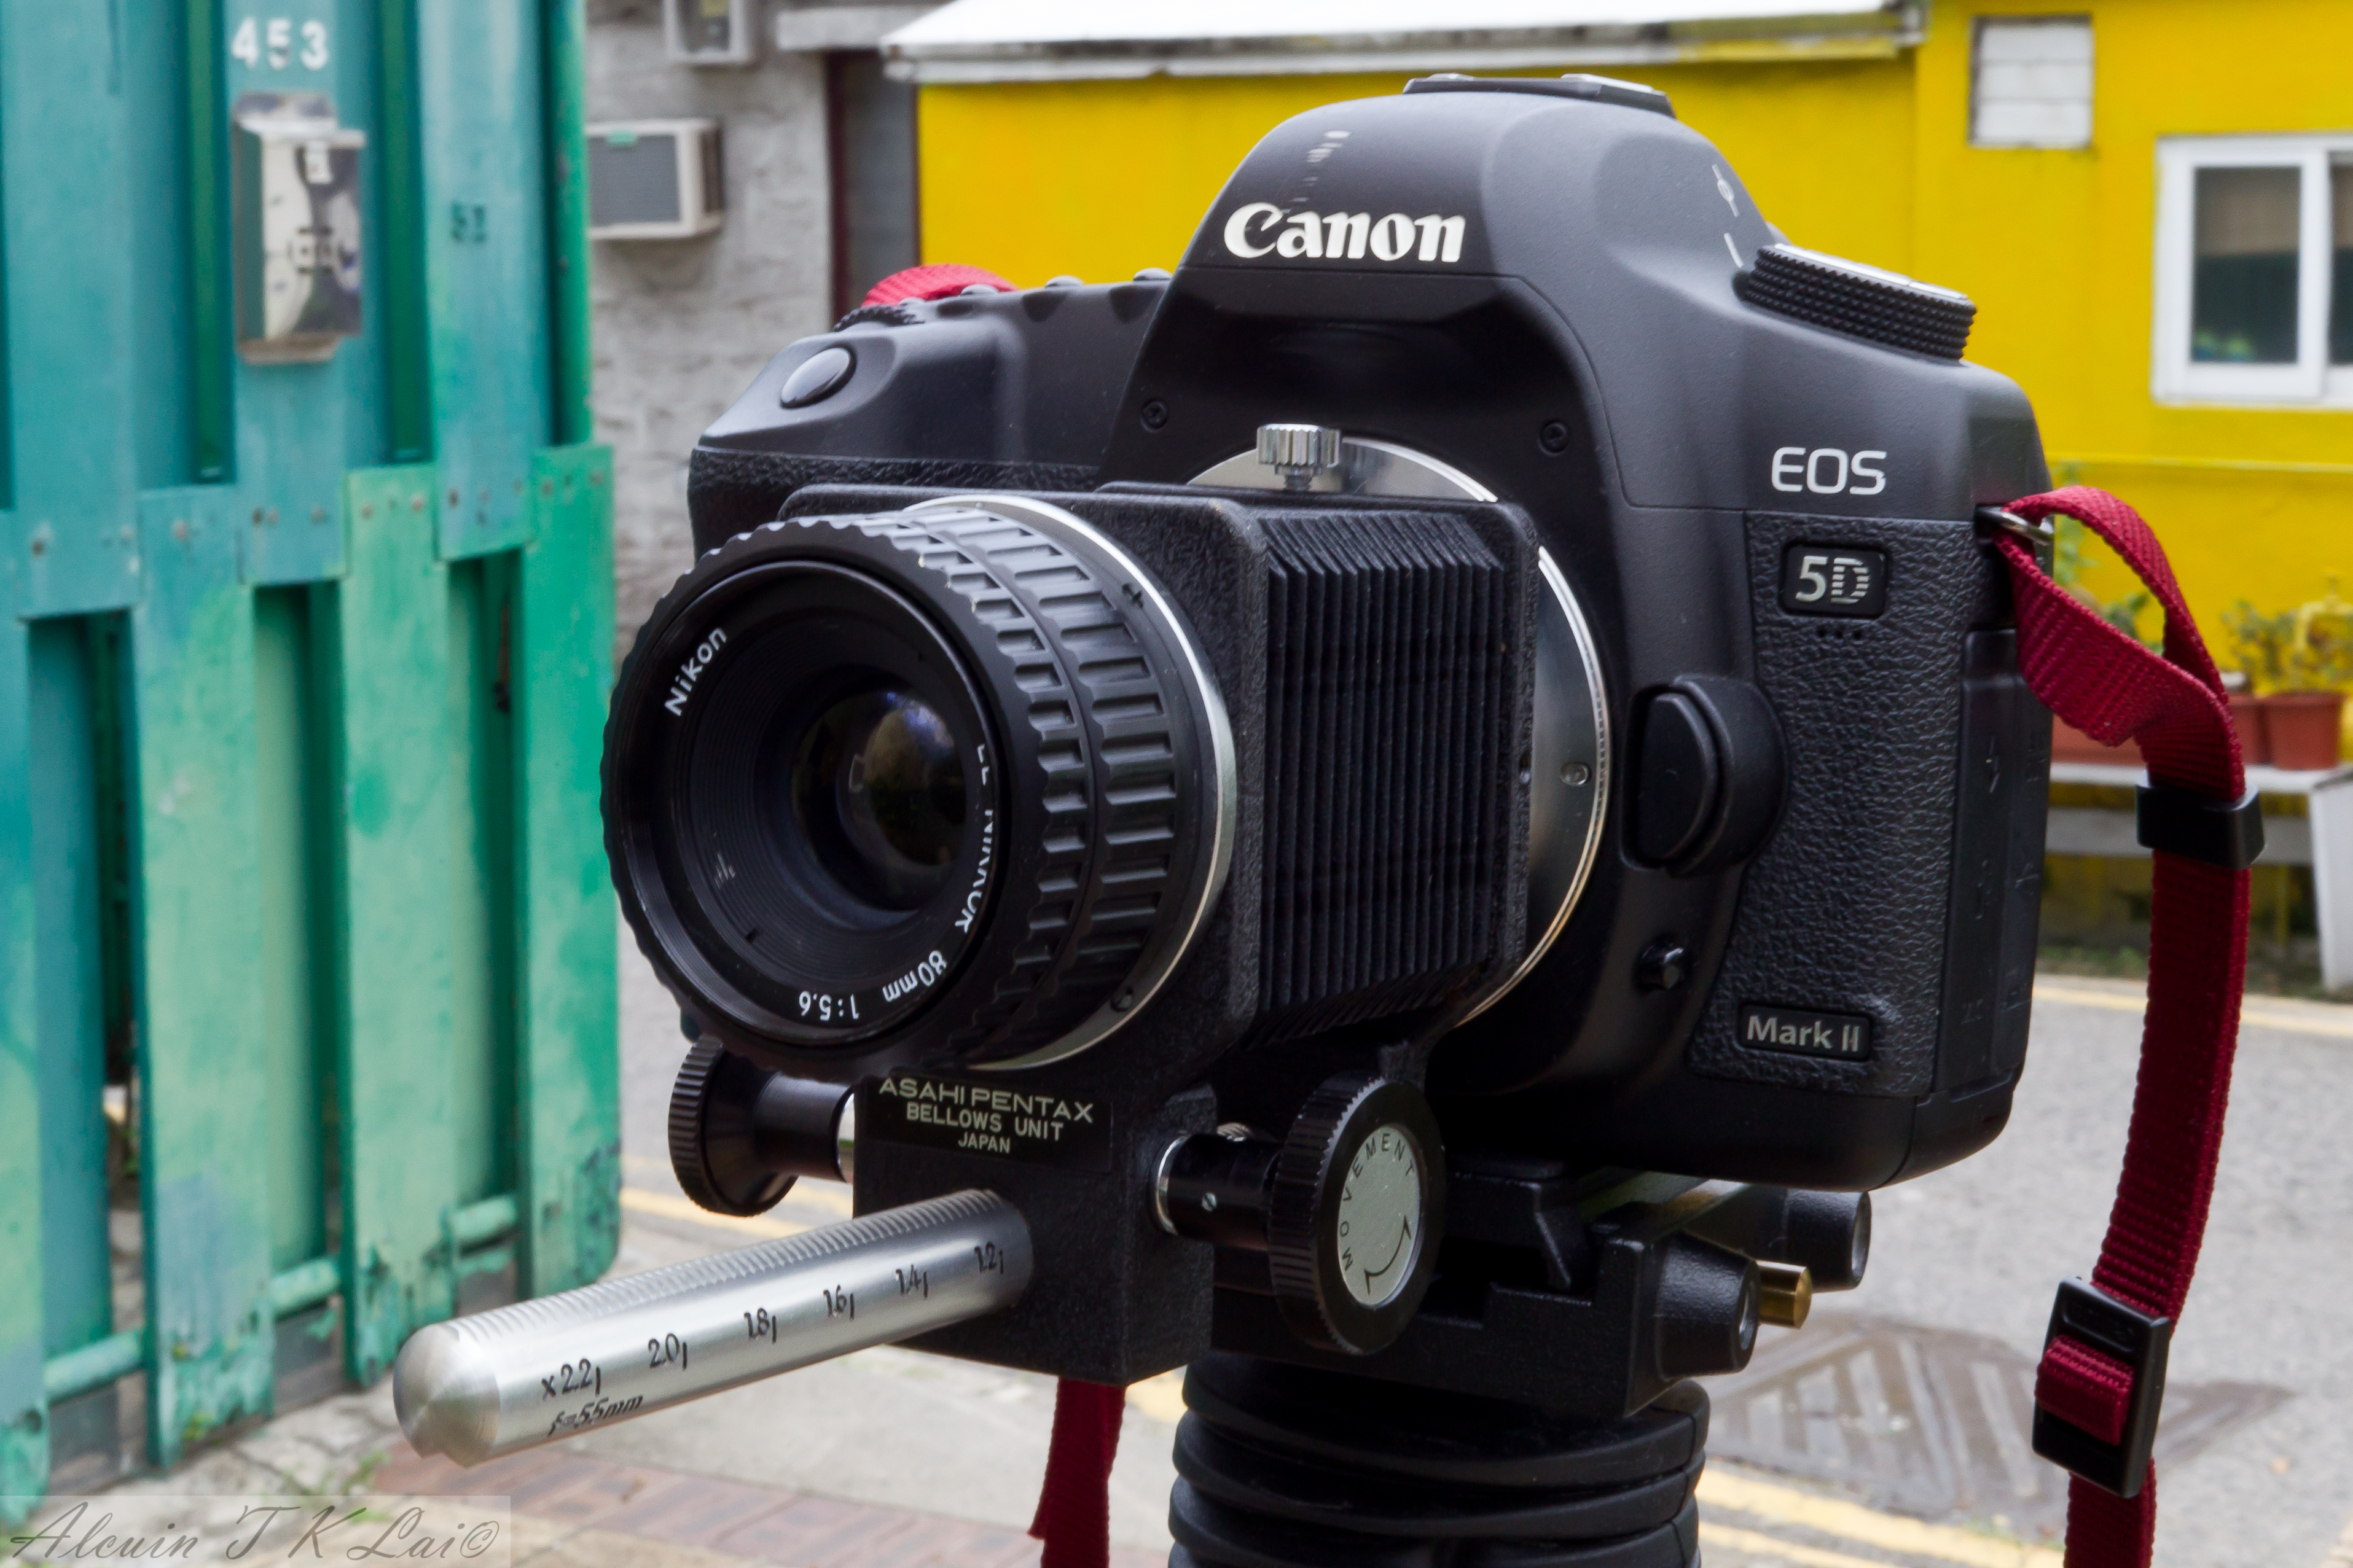 Canon 5d Mark ii Serial Number File:canon Eos 5d Mark ii